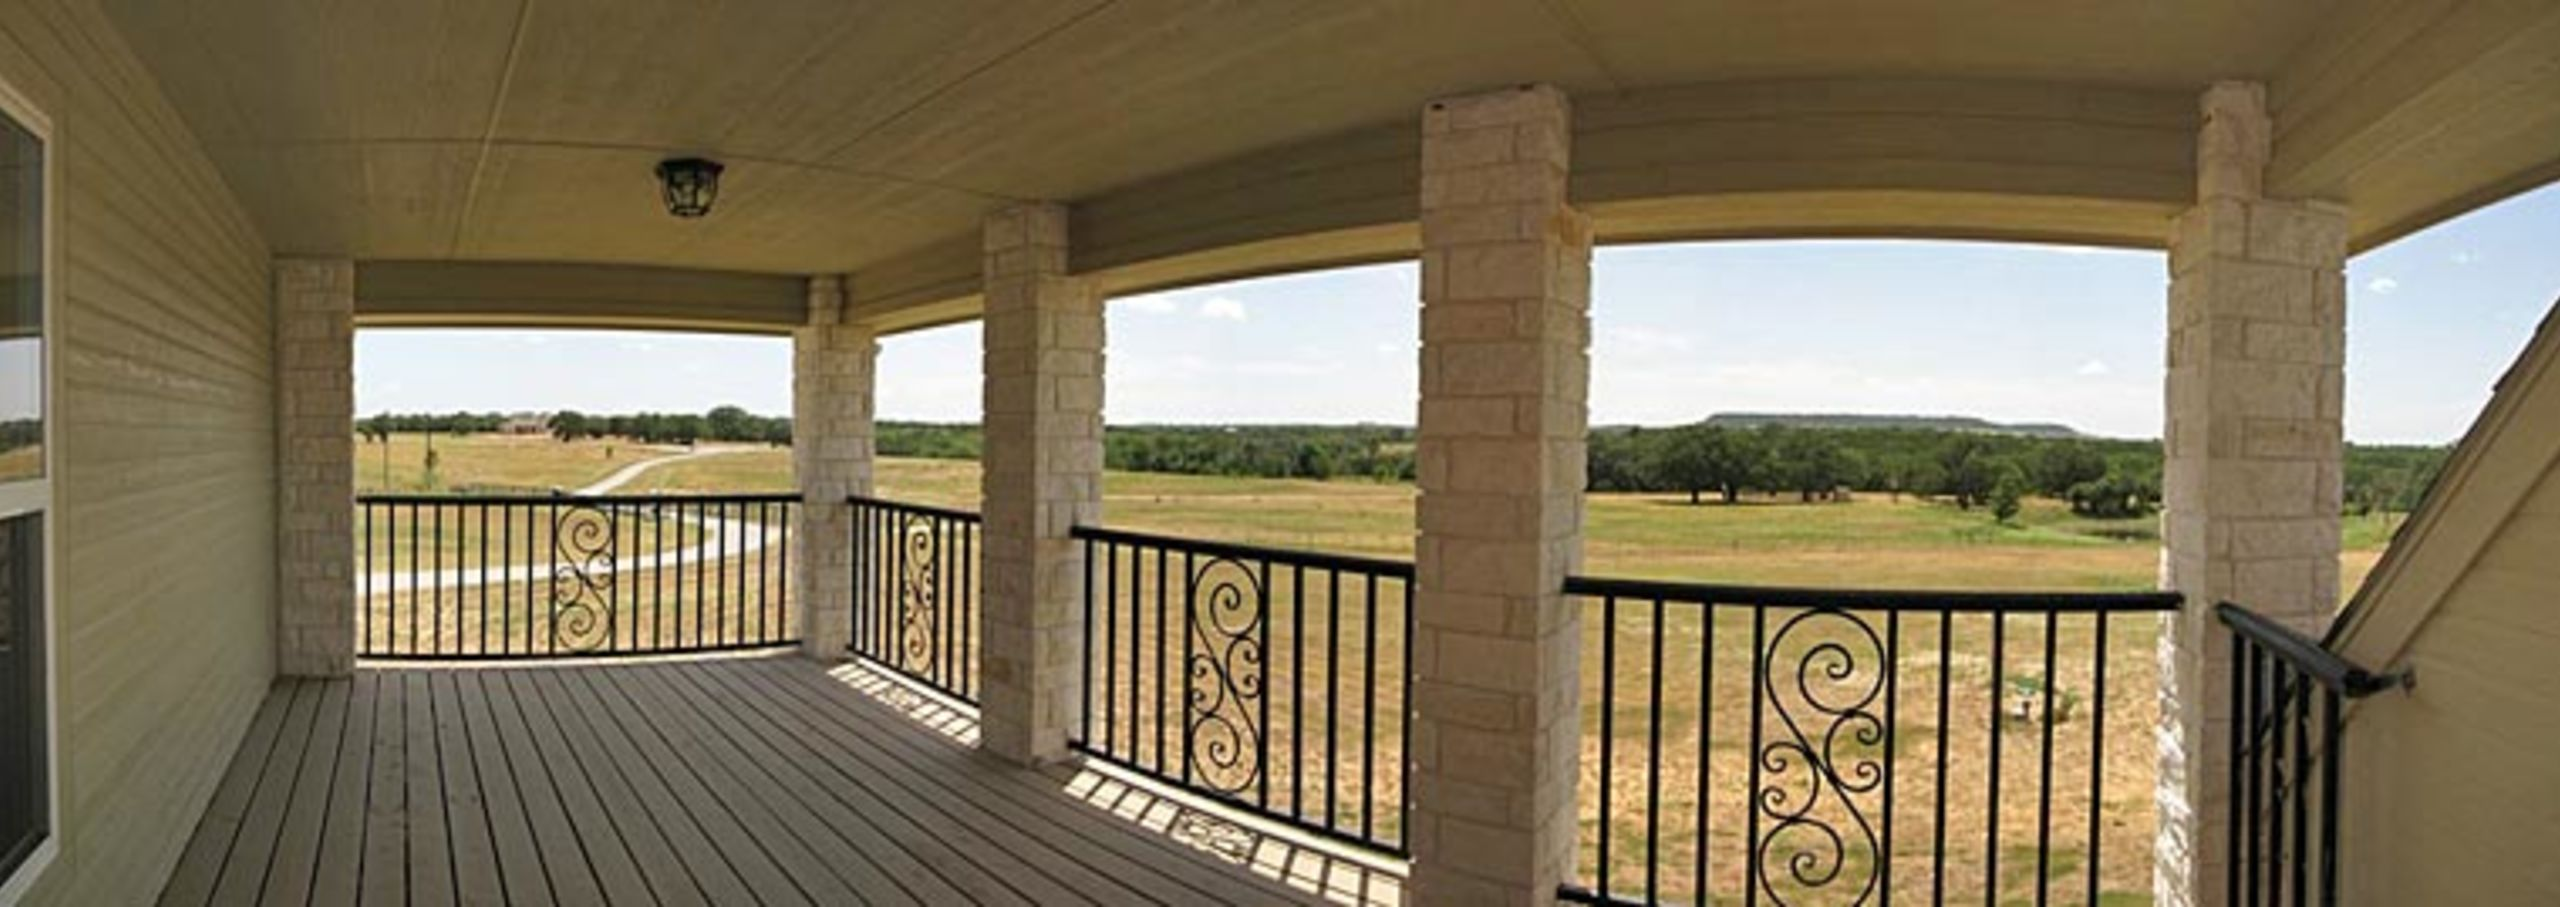 Granbury Ranch